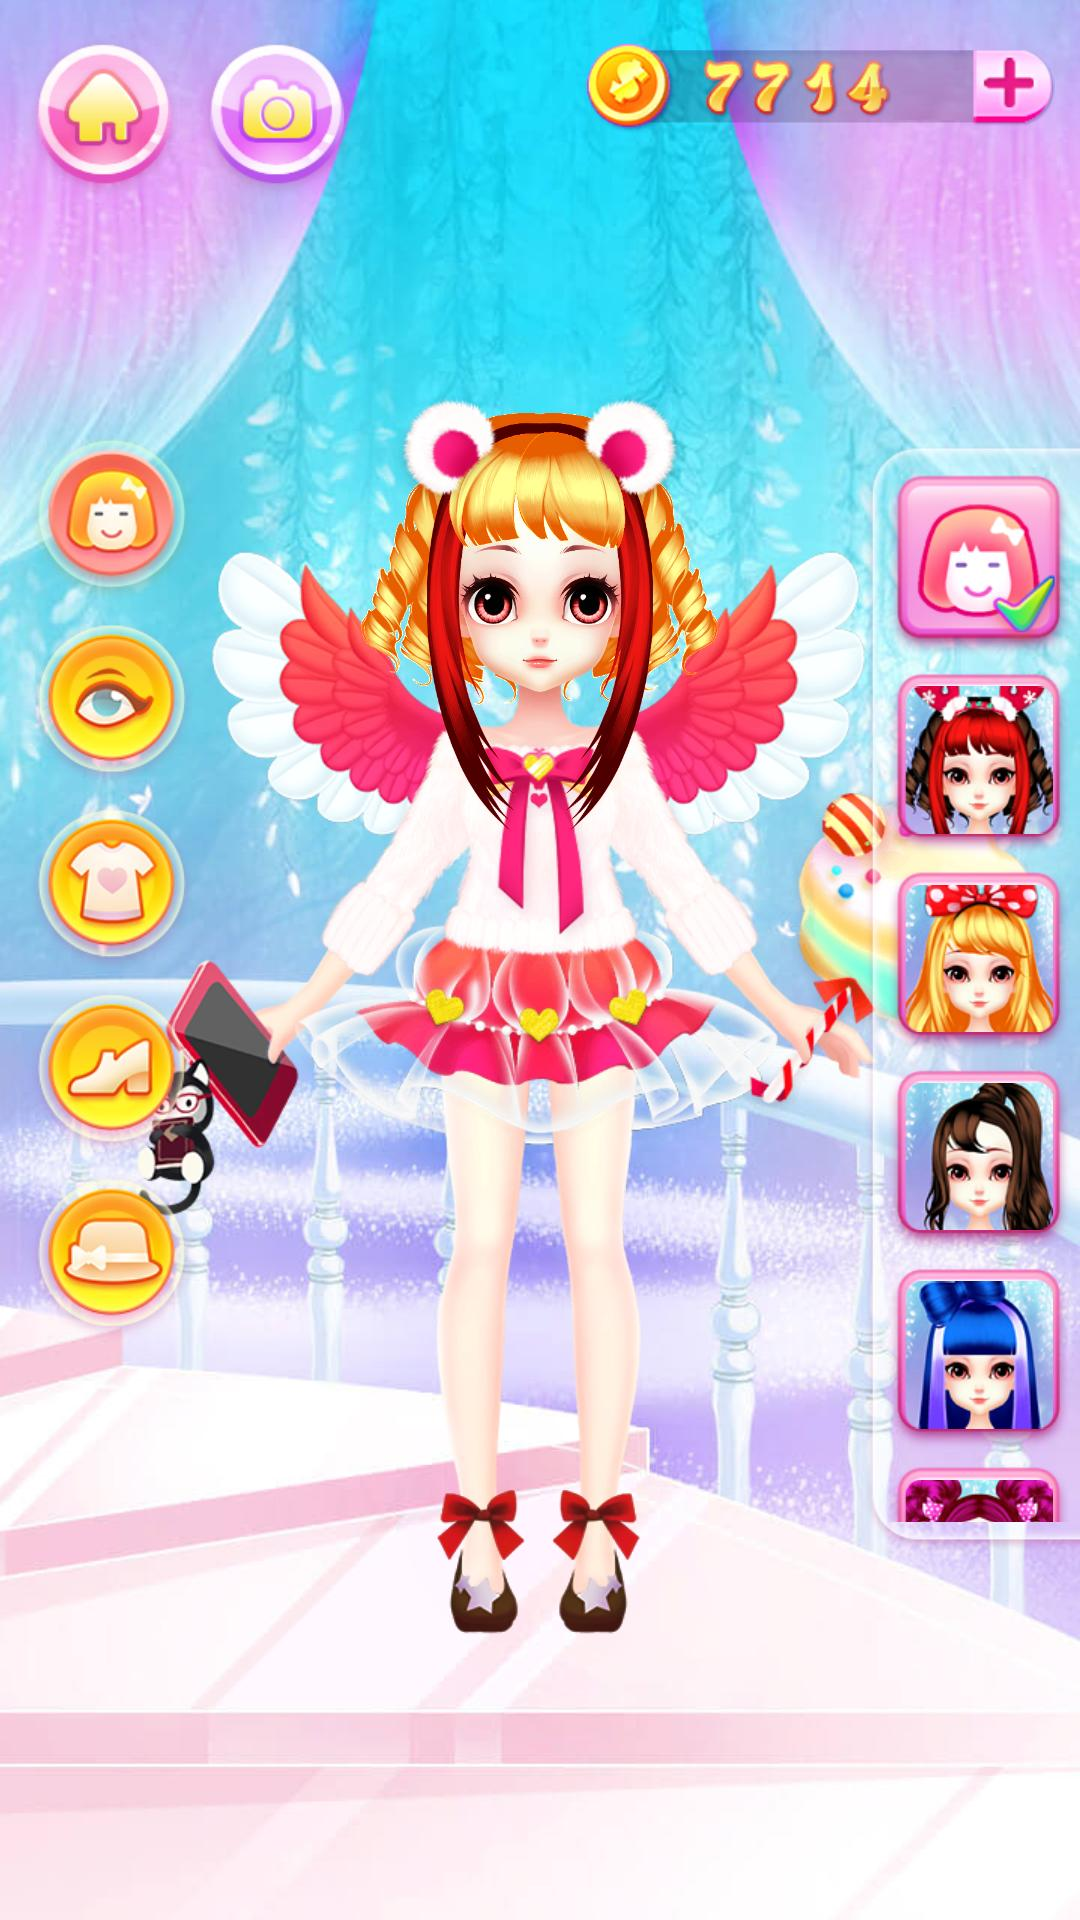 Fashion Hair Salon Games: Royal Hairstyle for Android - APK Download